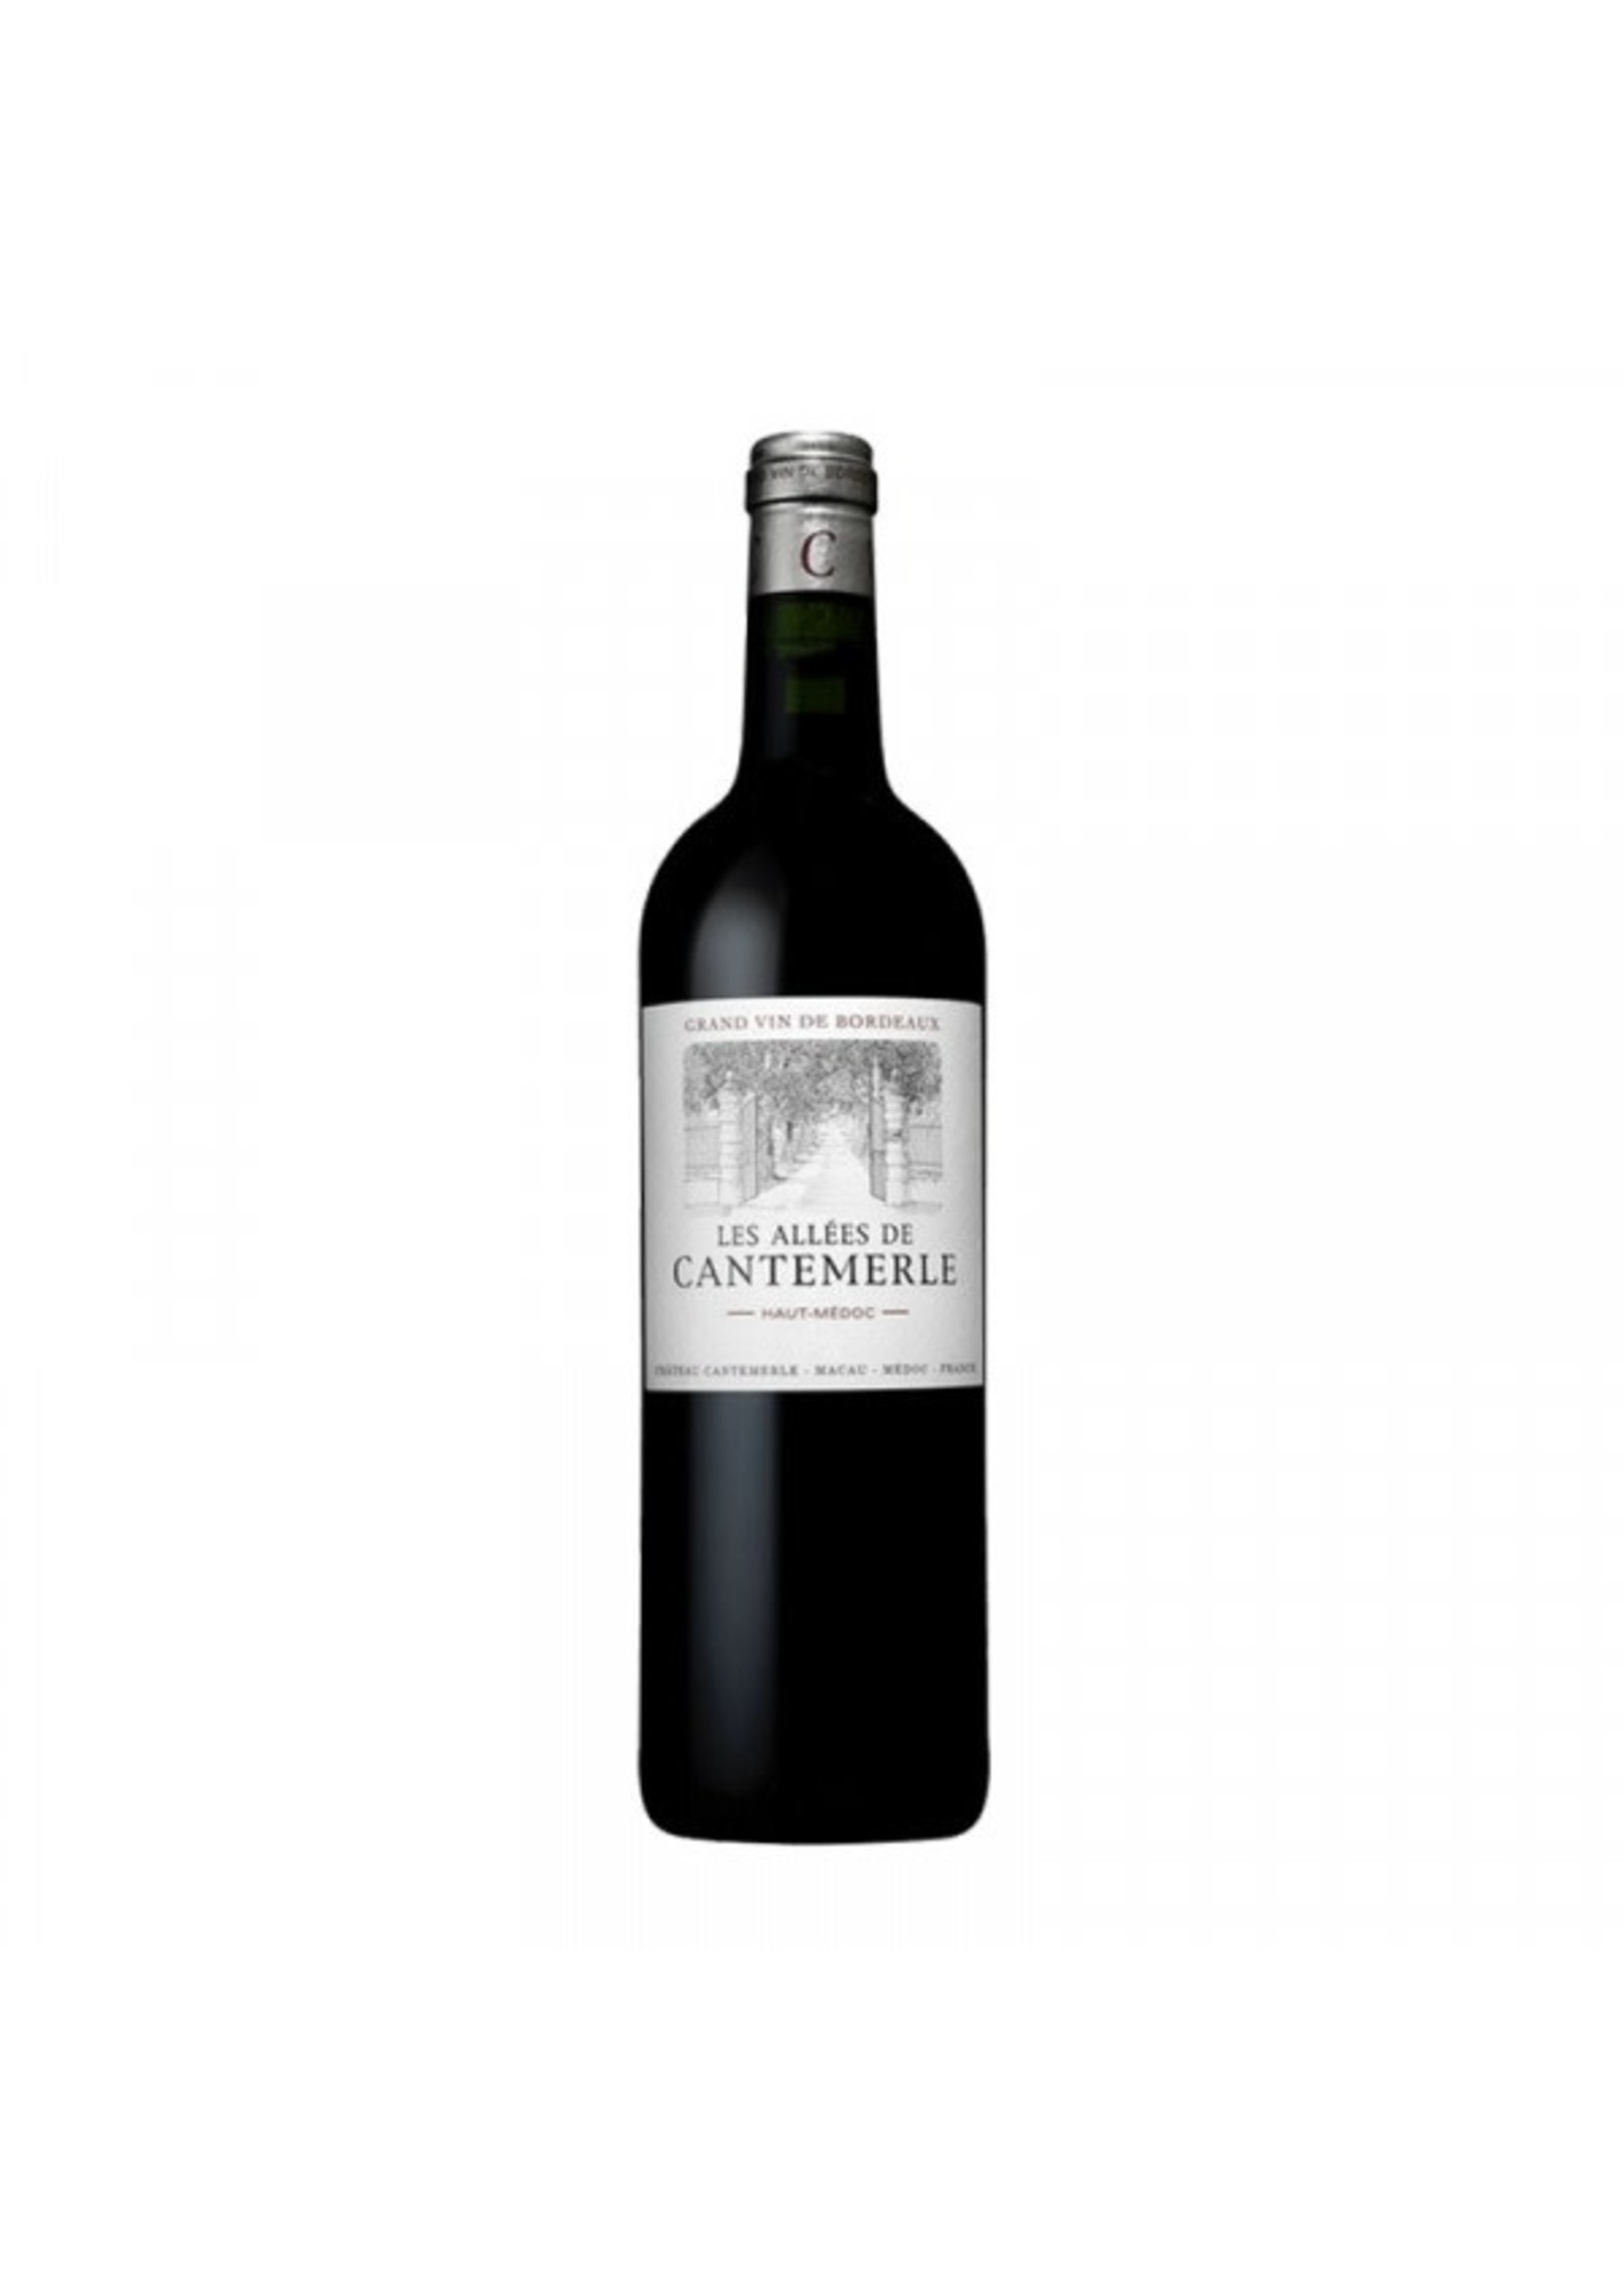 Chateau Cantemerle 2008 Haut Medoc 750ml